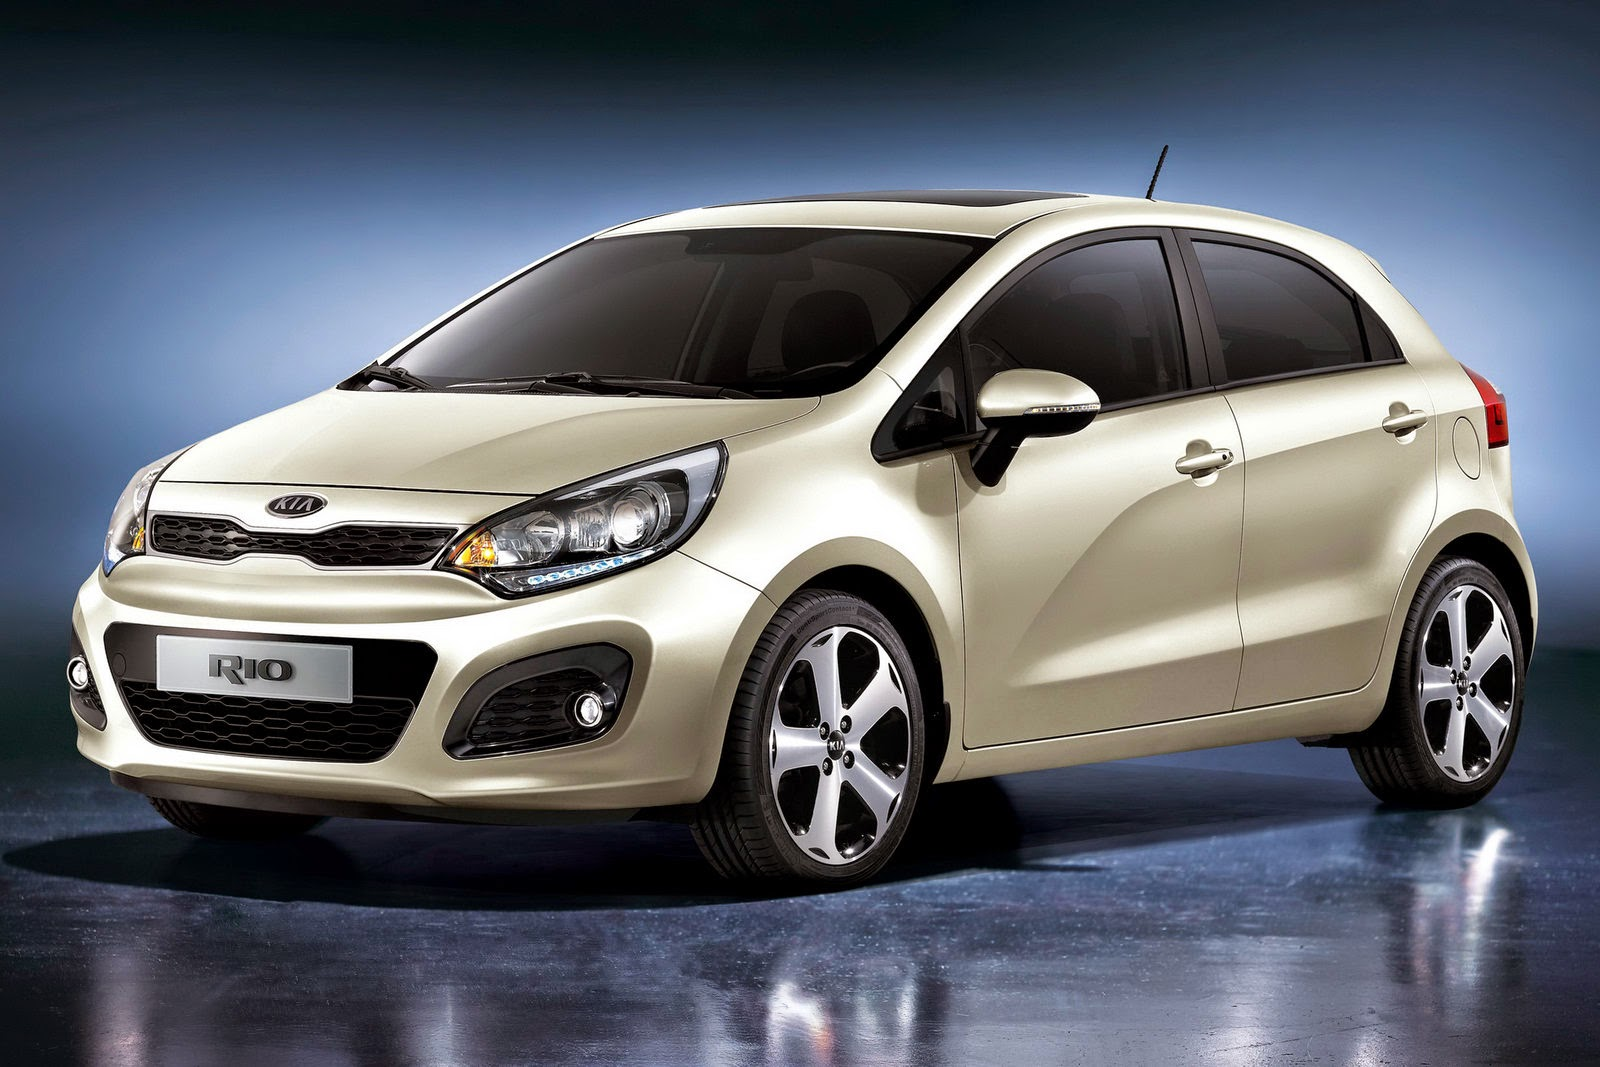 kia rio review specs and price 2015 net 4 cars. Black Bedroom Furniture Sets. Home Design Ideas